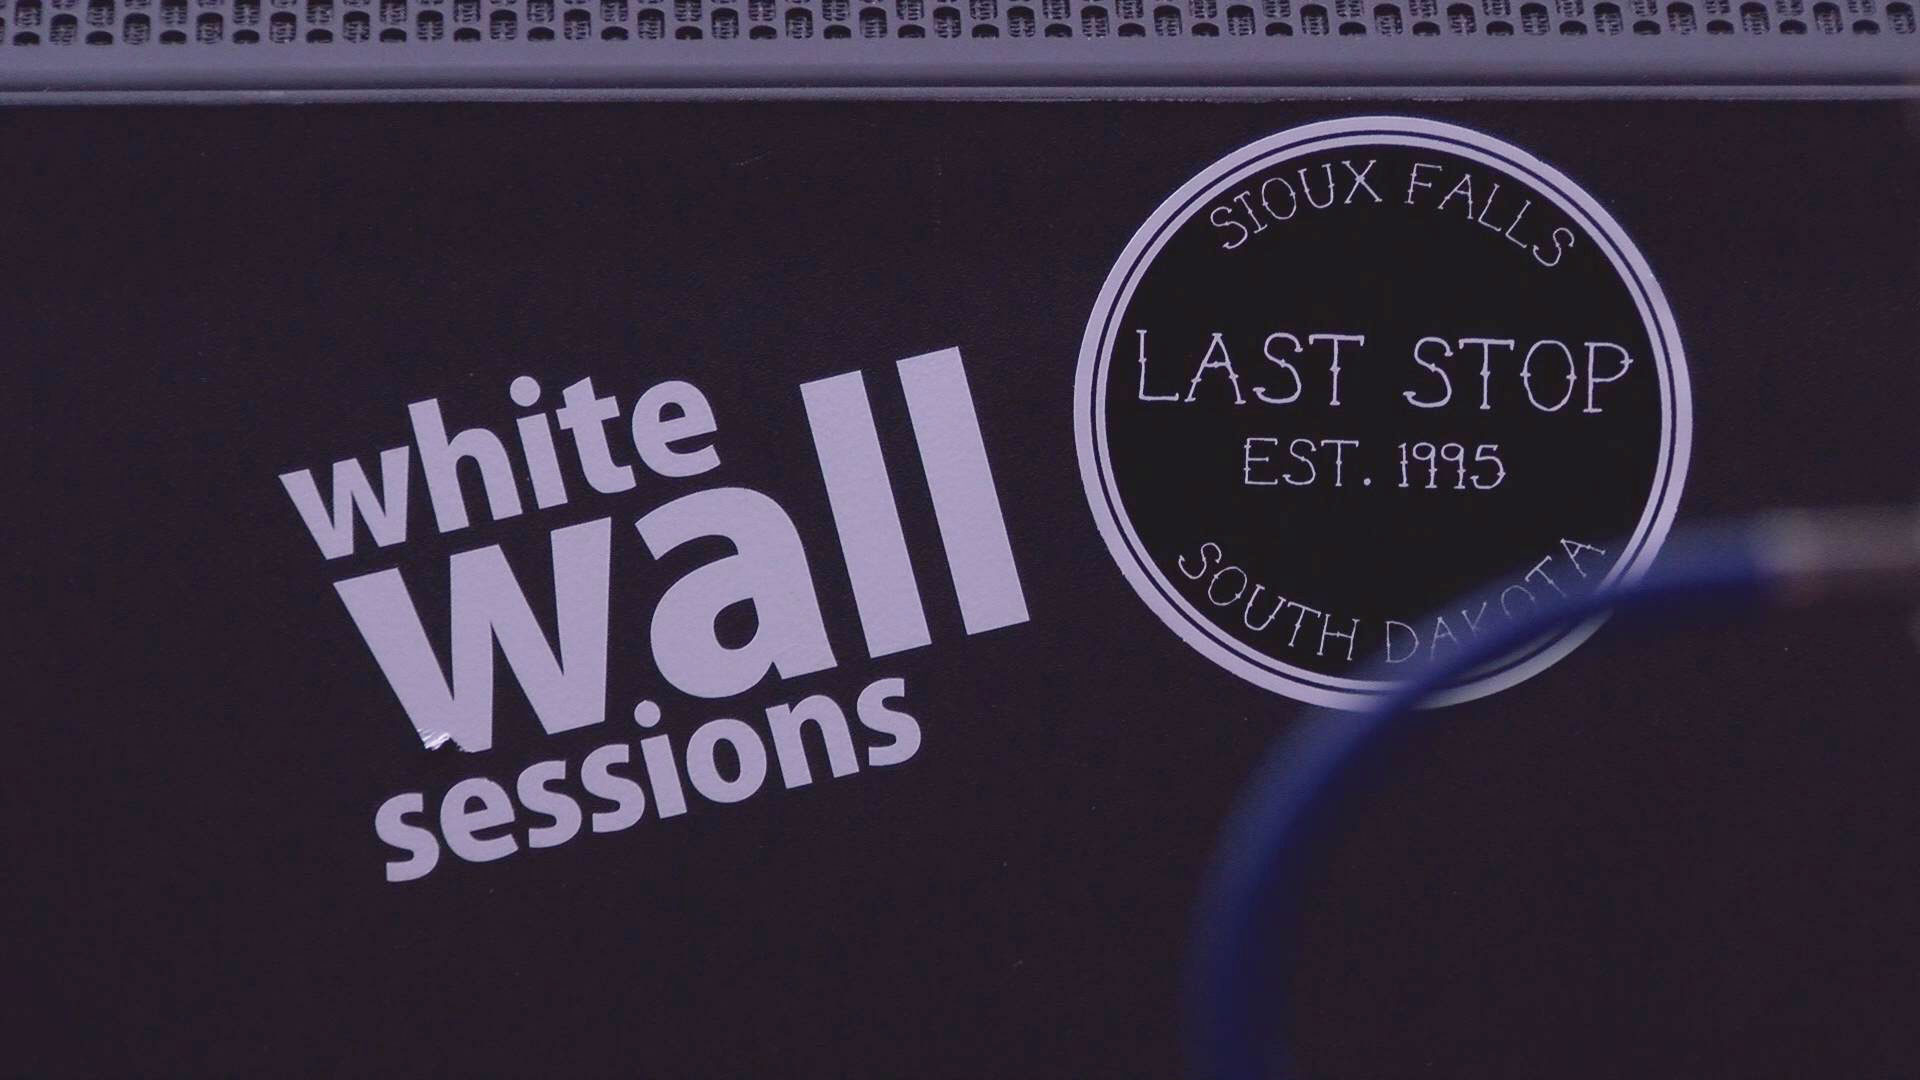 White Wall Sessions